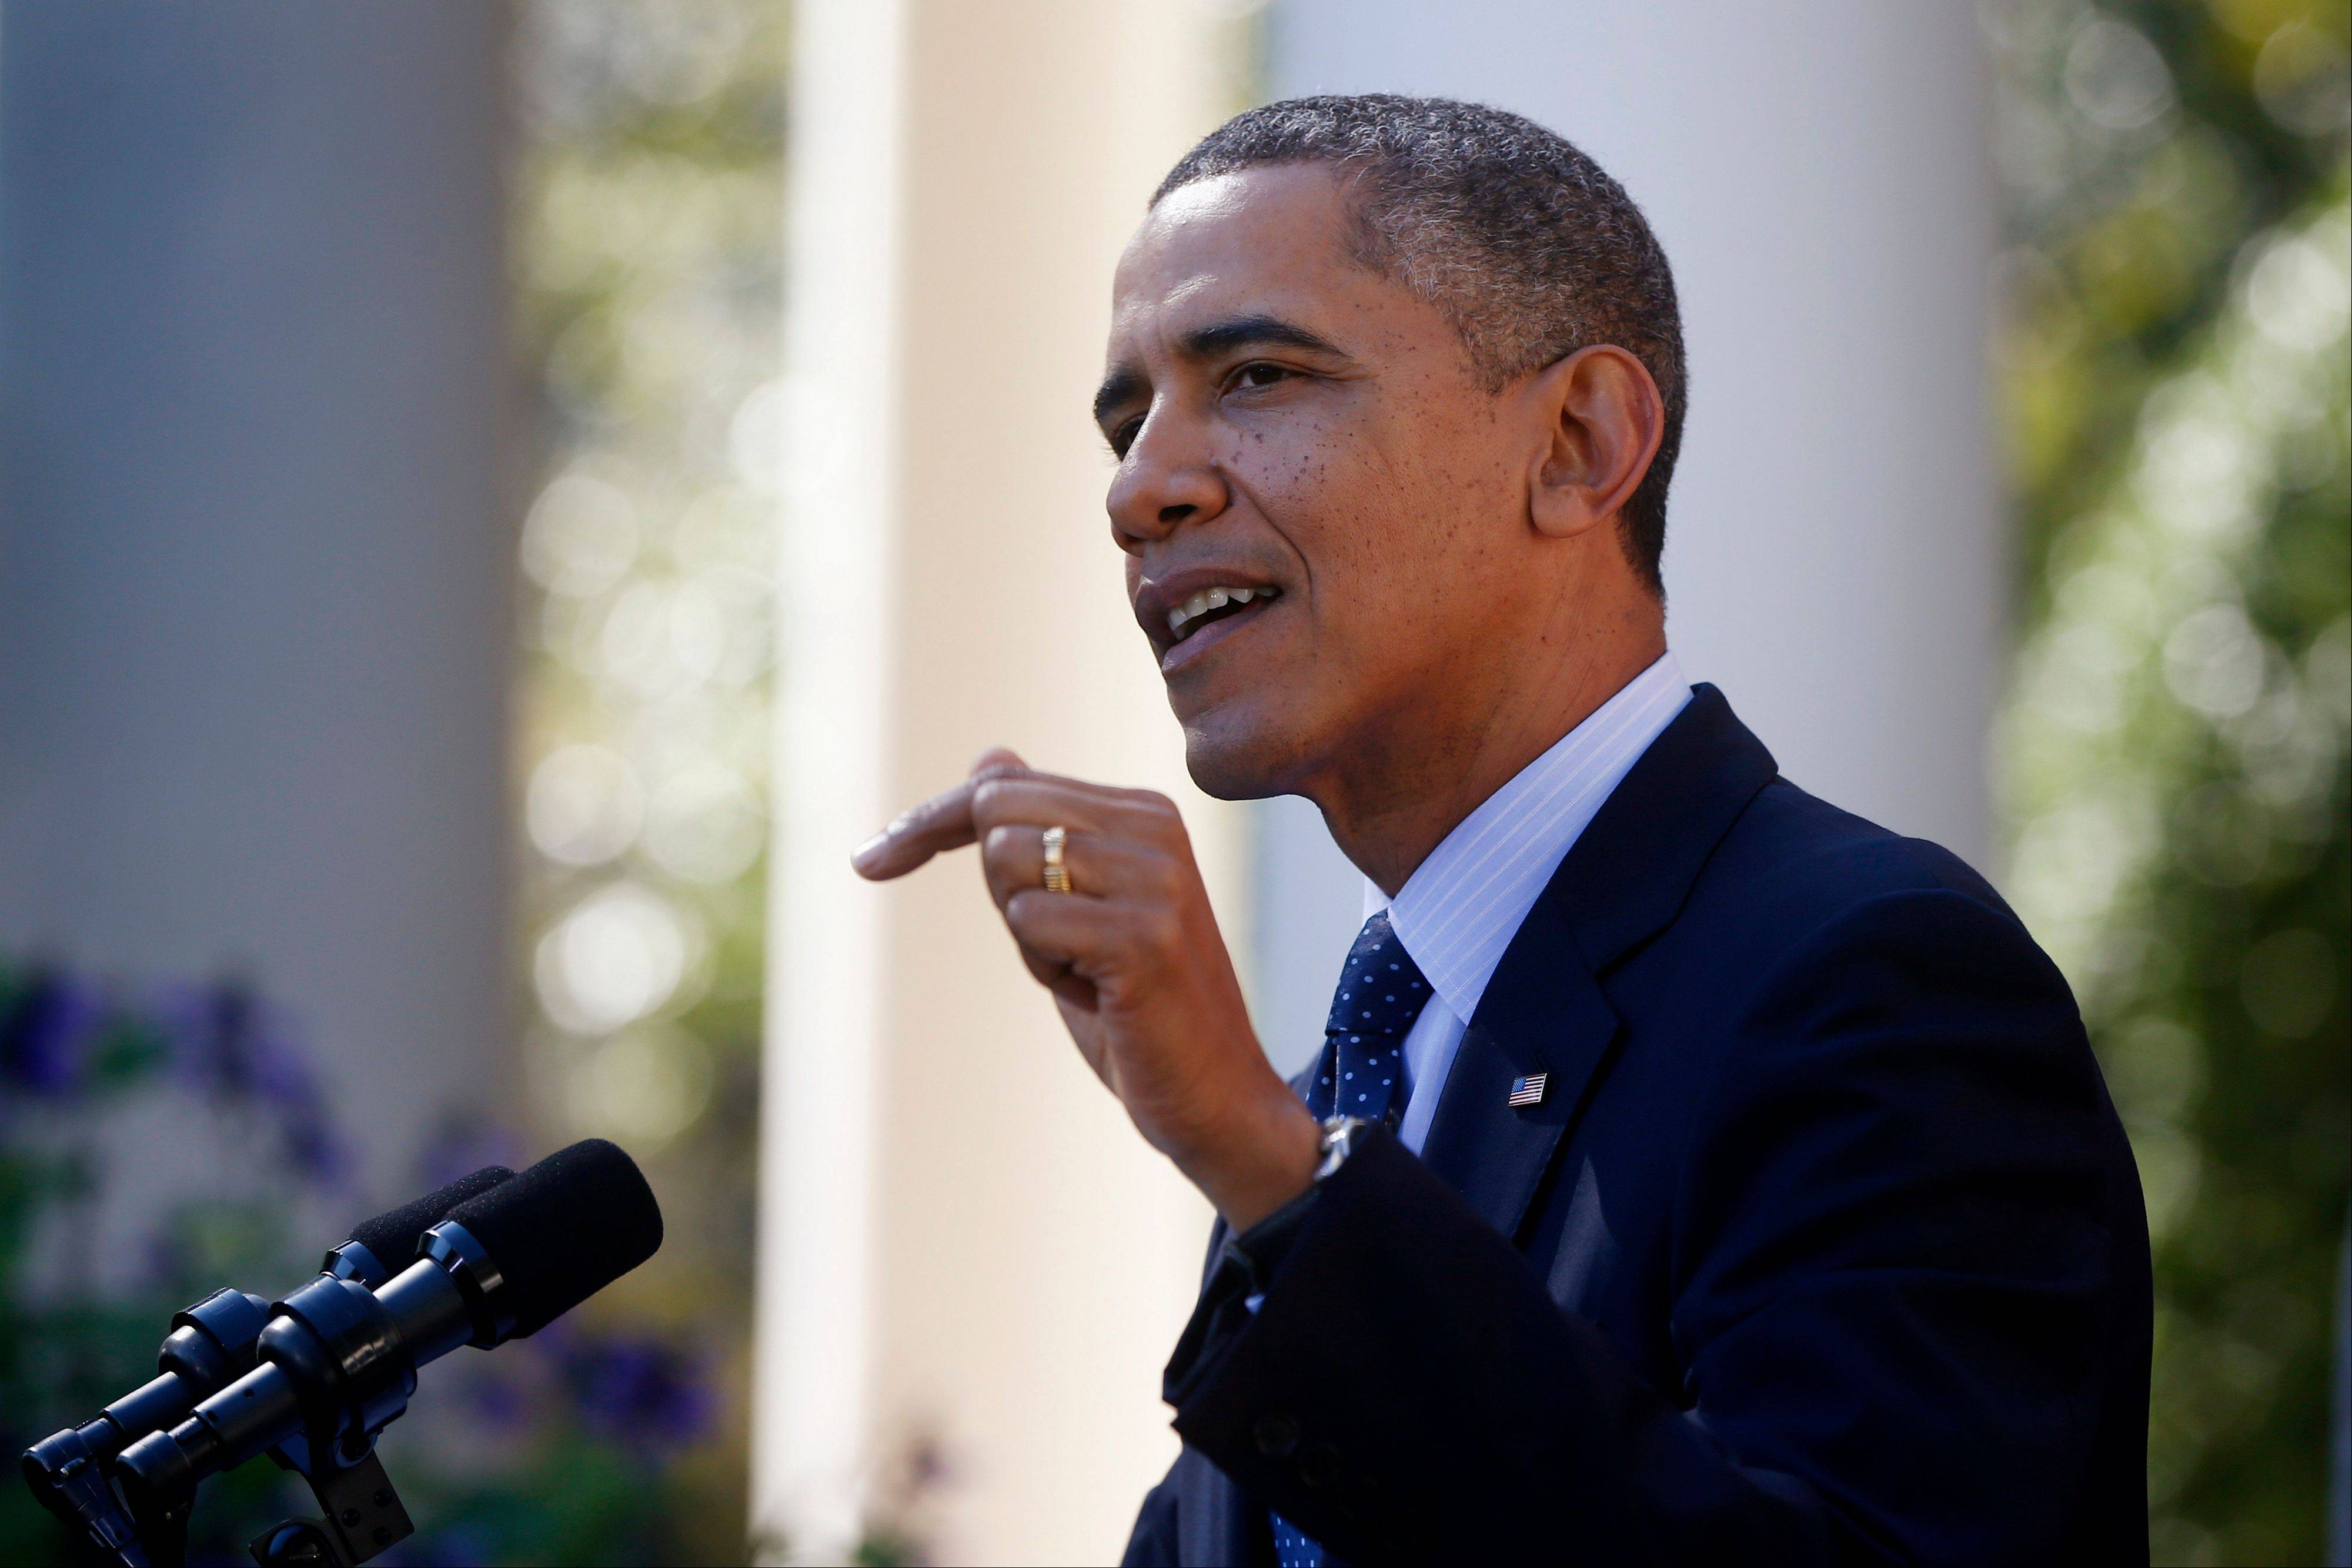 President Barack Obama gestures while speaking in the Rose Garden of the White House in Washington, Monday. Project developers who spoke to the AP on condition of anonymity -- because they feared they would otherwise be fired -- said they raised doubts among themselves whether the website could be ready in time.